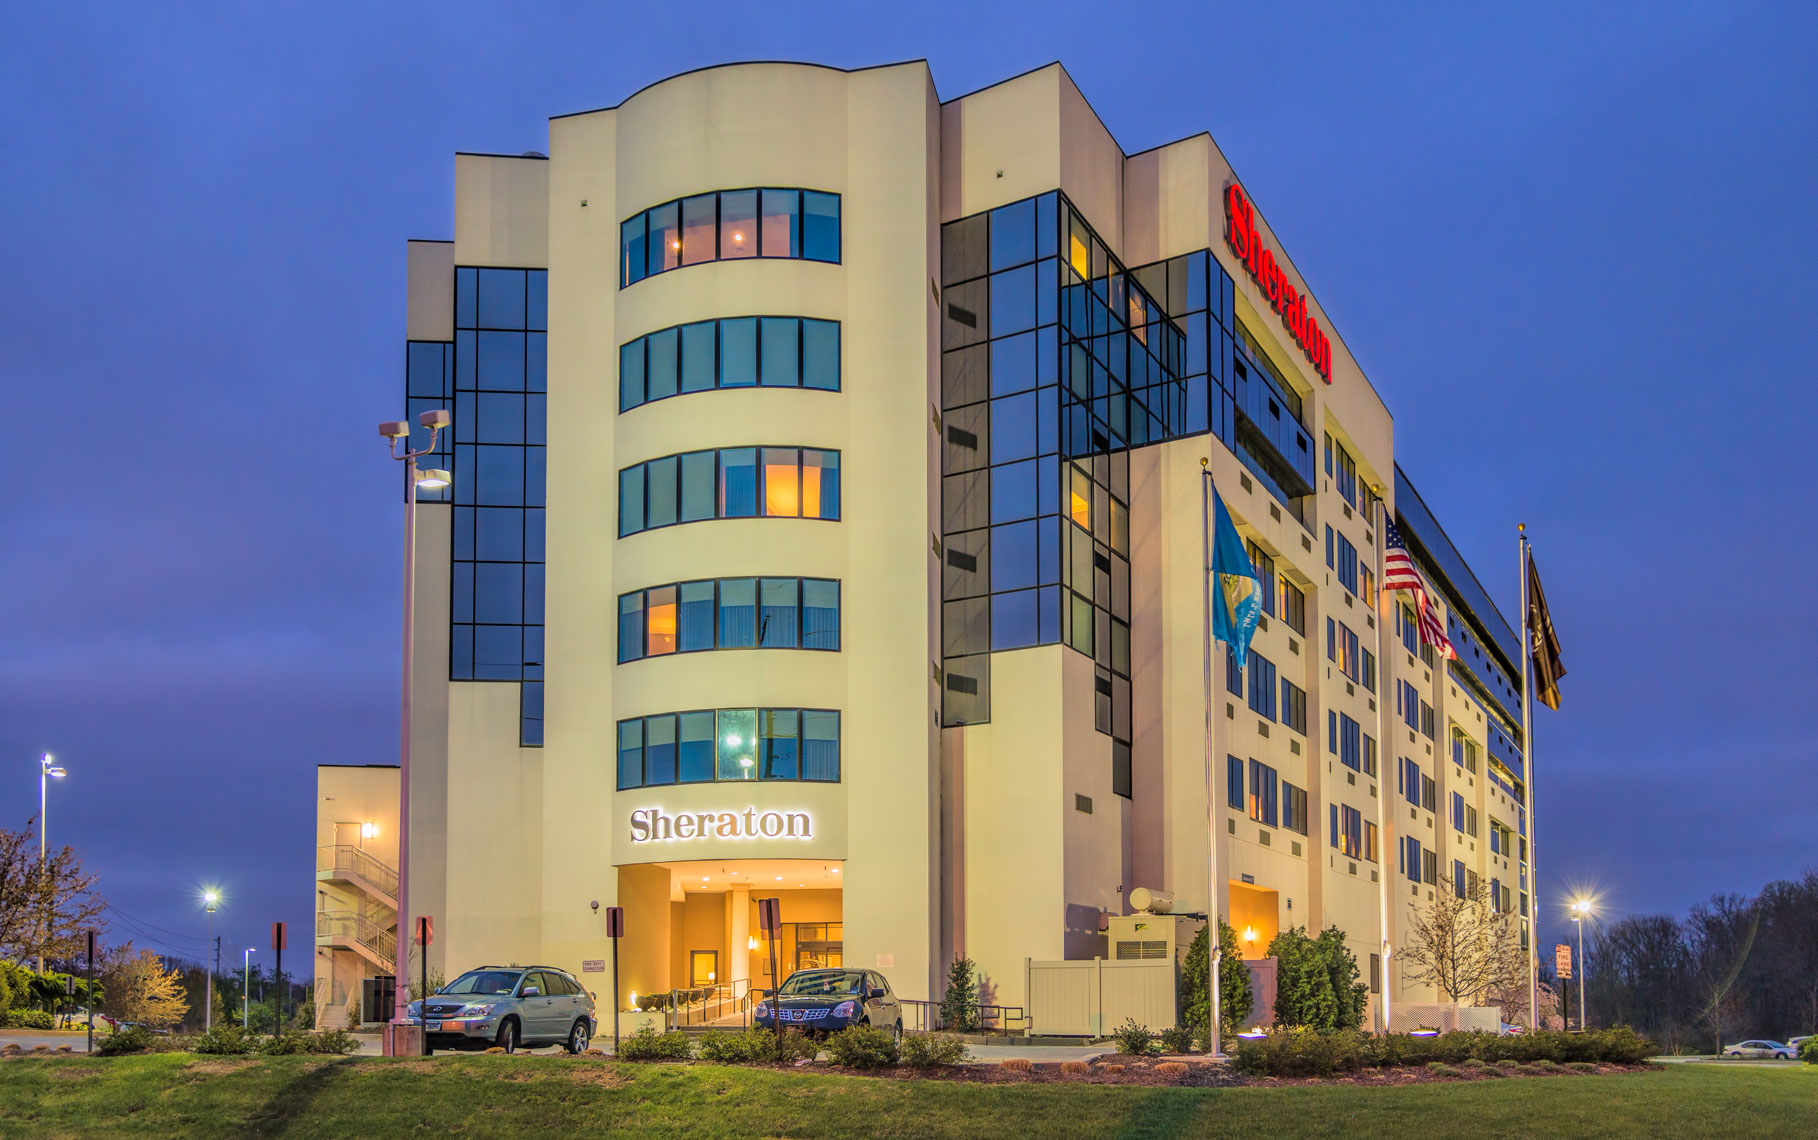 28-New-Castle-Sheraton